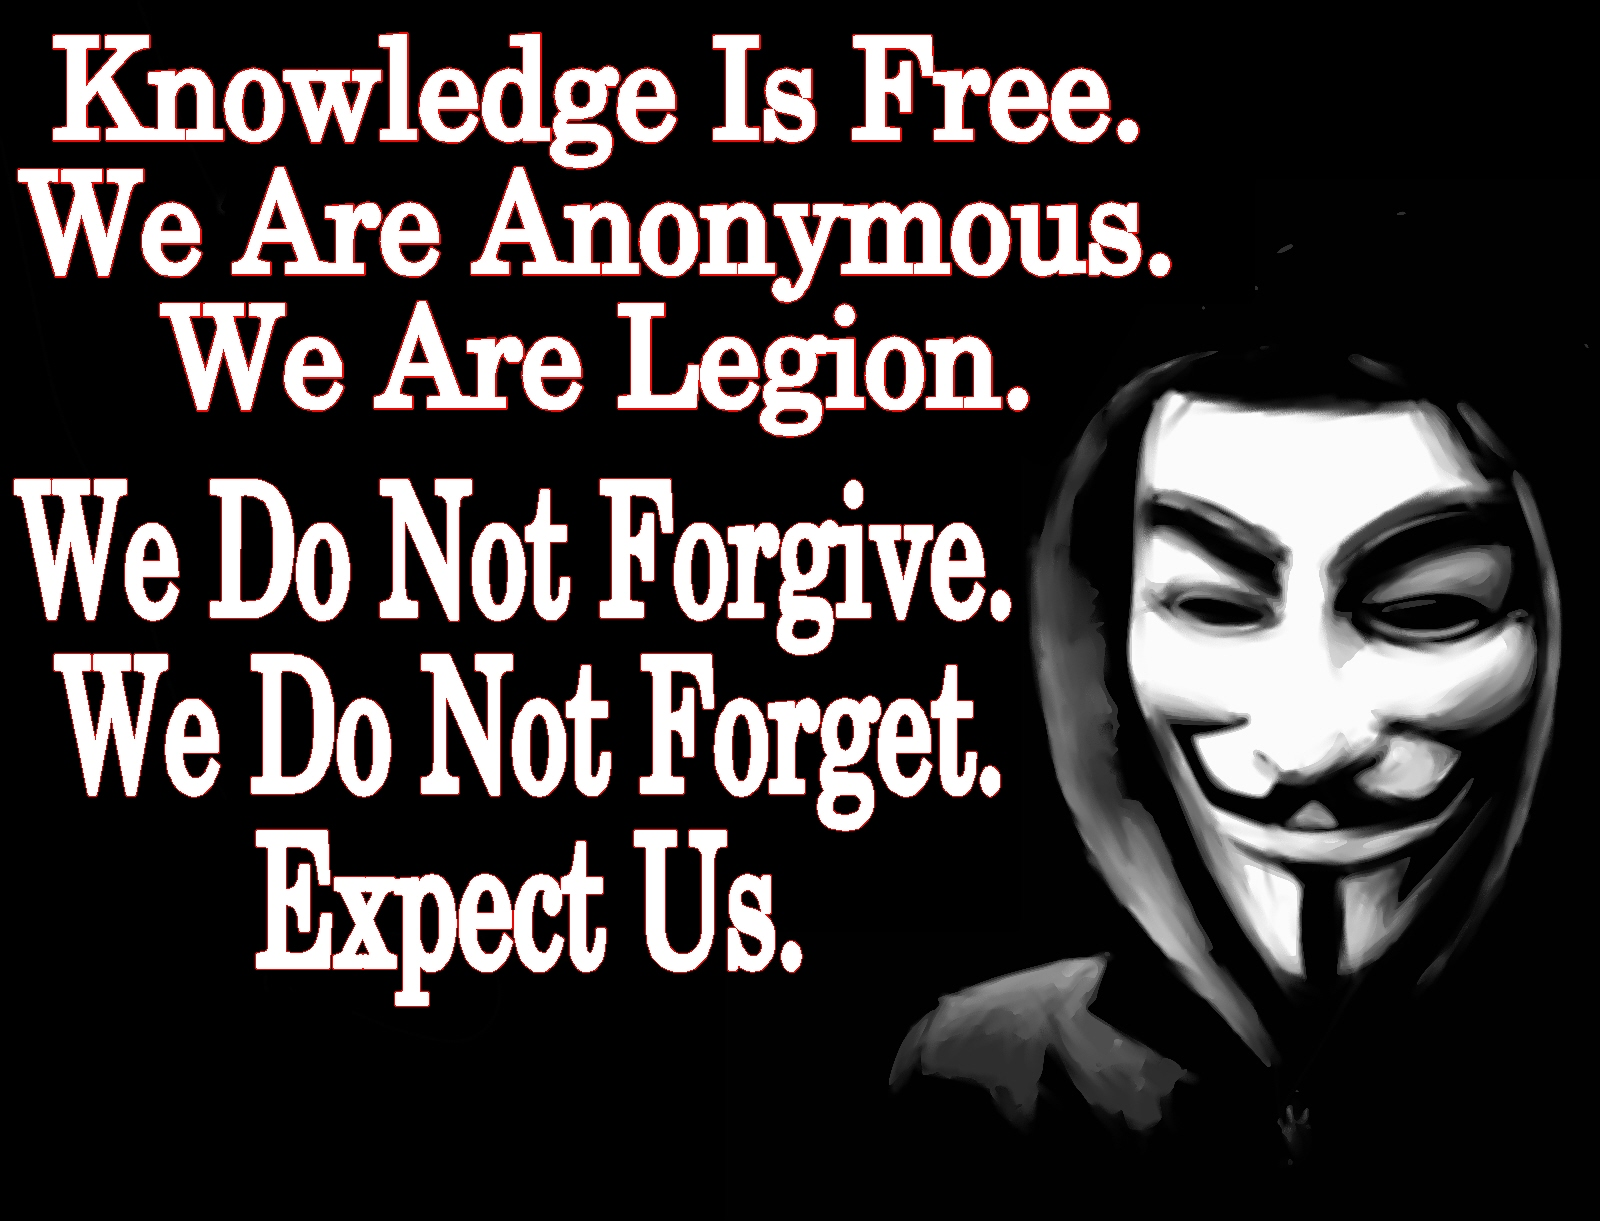 20121123-we-are-anonymous.jpg